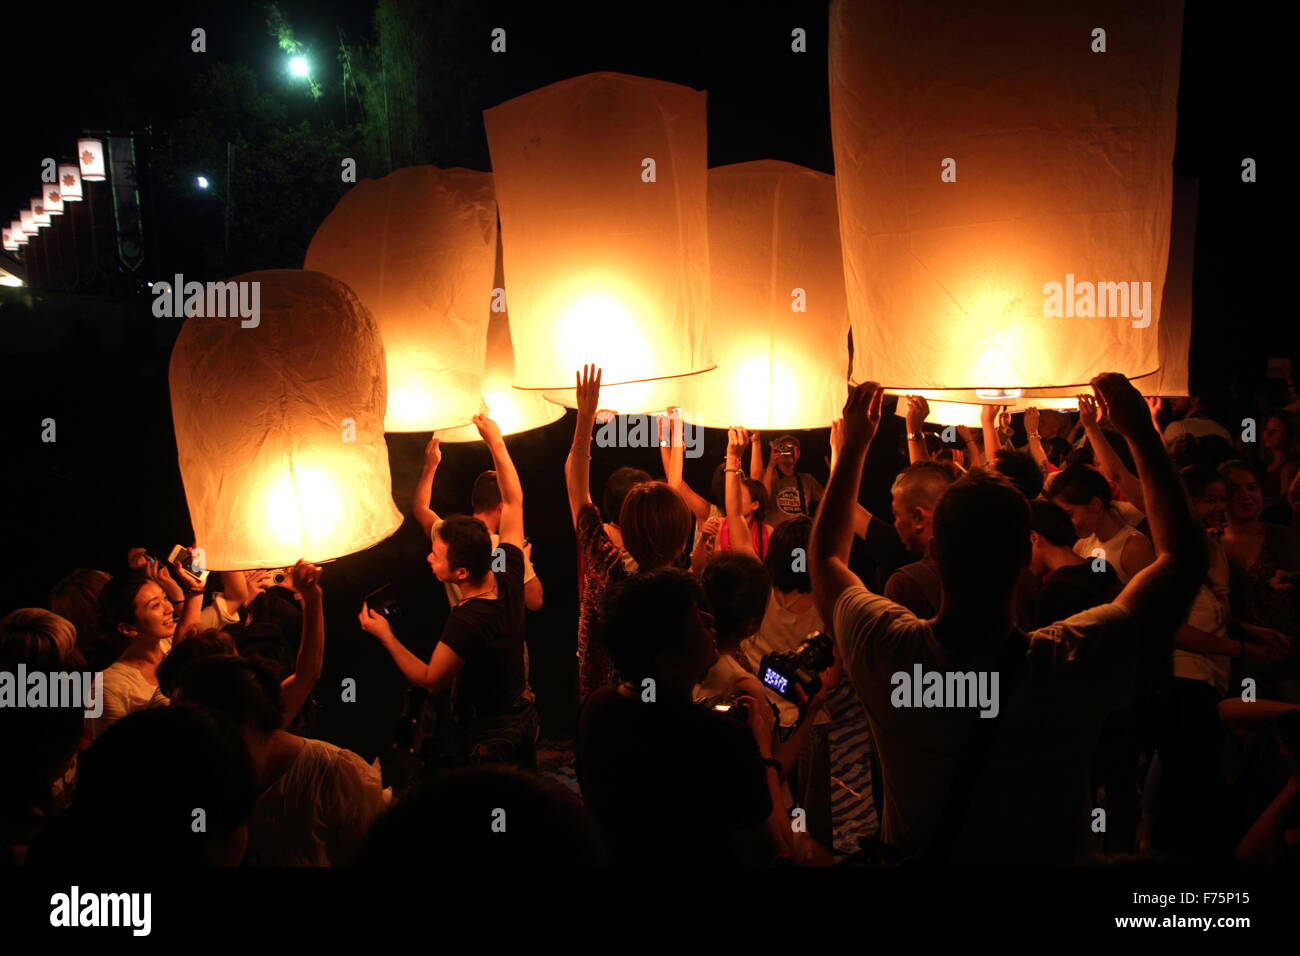 Chiang Mai, Thailand. 25th November 2015. Tourists gather to release Khom Loi (sky lantern) during the Yi Peng Festival Stock Photo